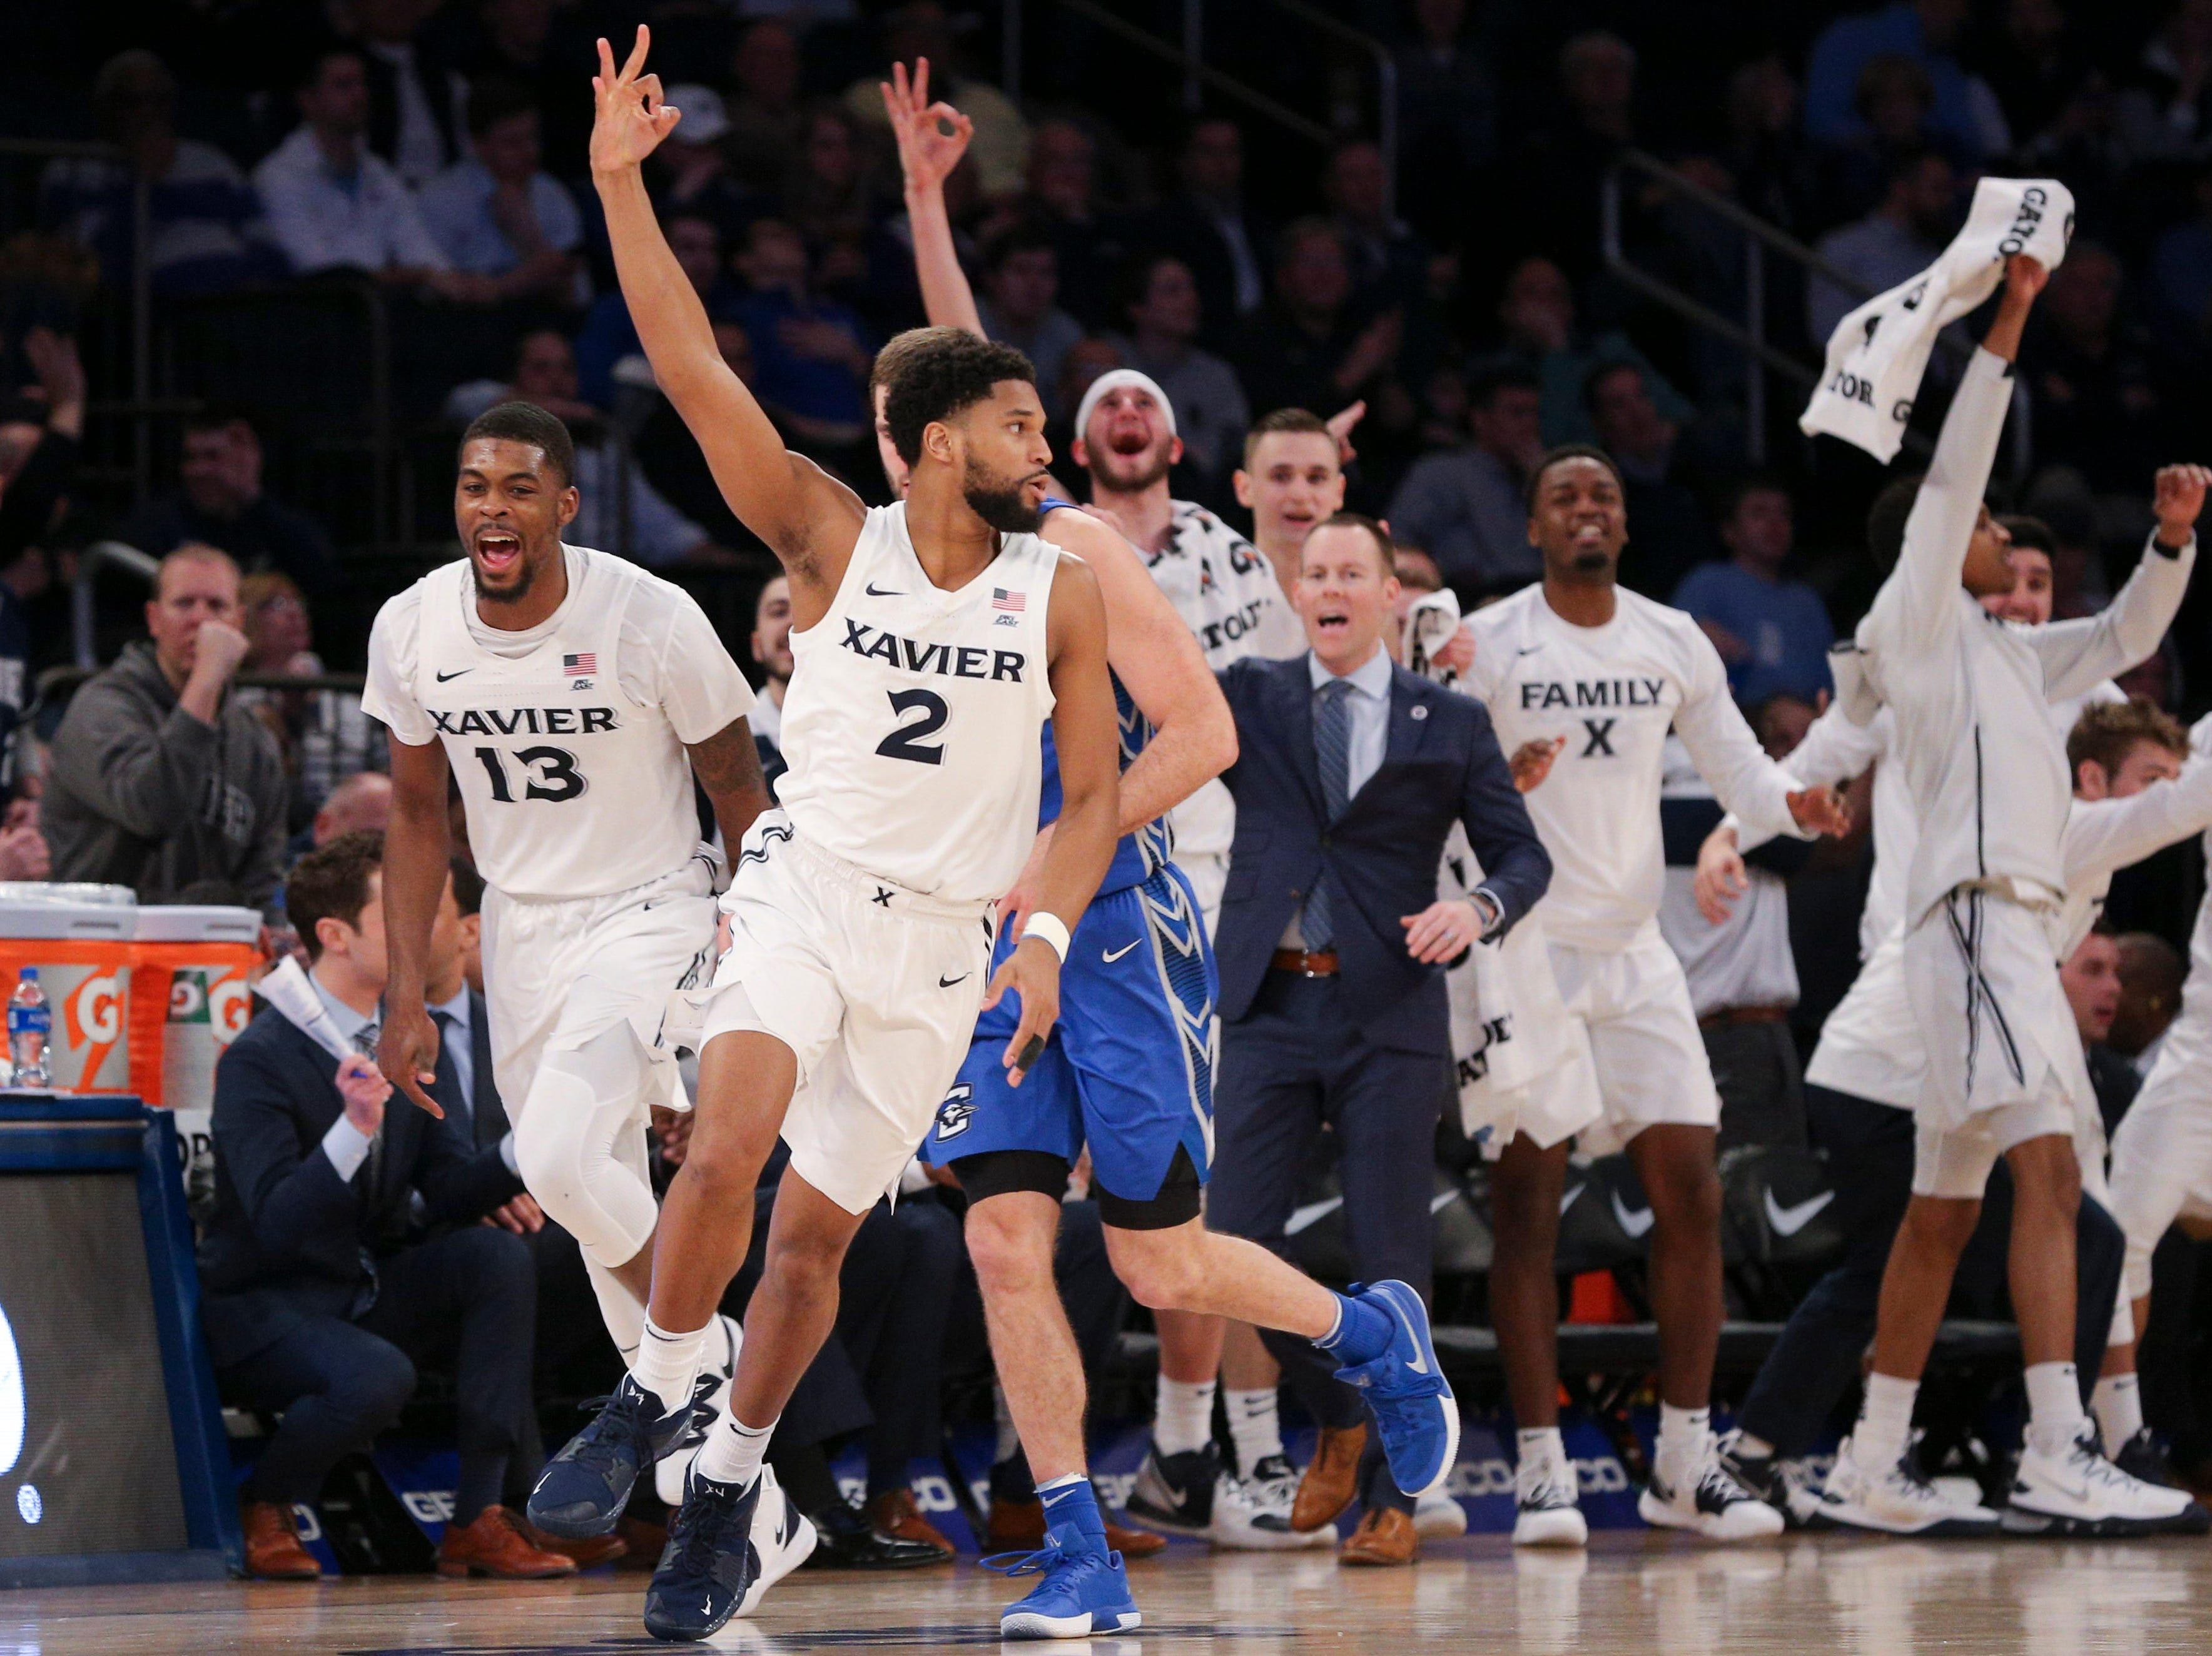 Xavier Musketeers guard Kyle Castlin (2) celebrates a three point shot against the Creighton Bluejays during the second half of a quarterfinal game of the Big East conference tournament at Madison Square Garden.